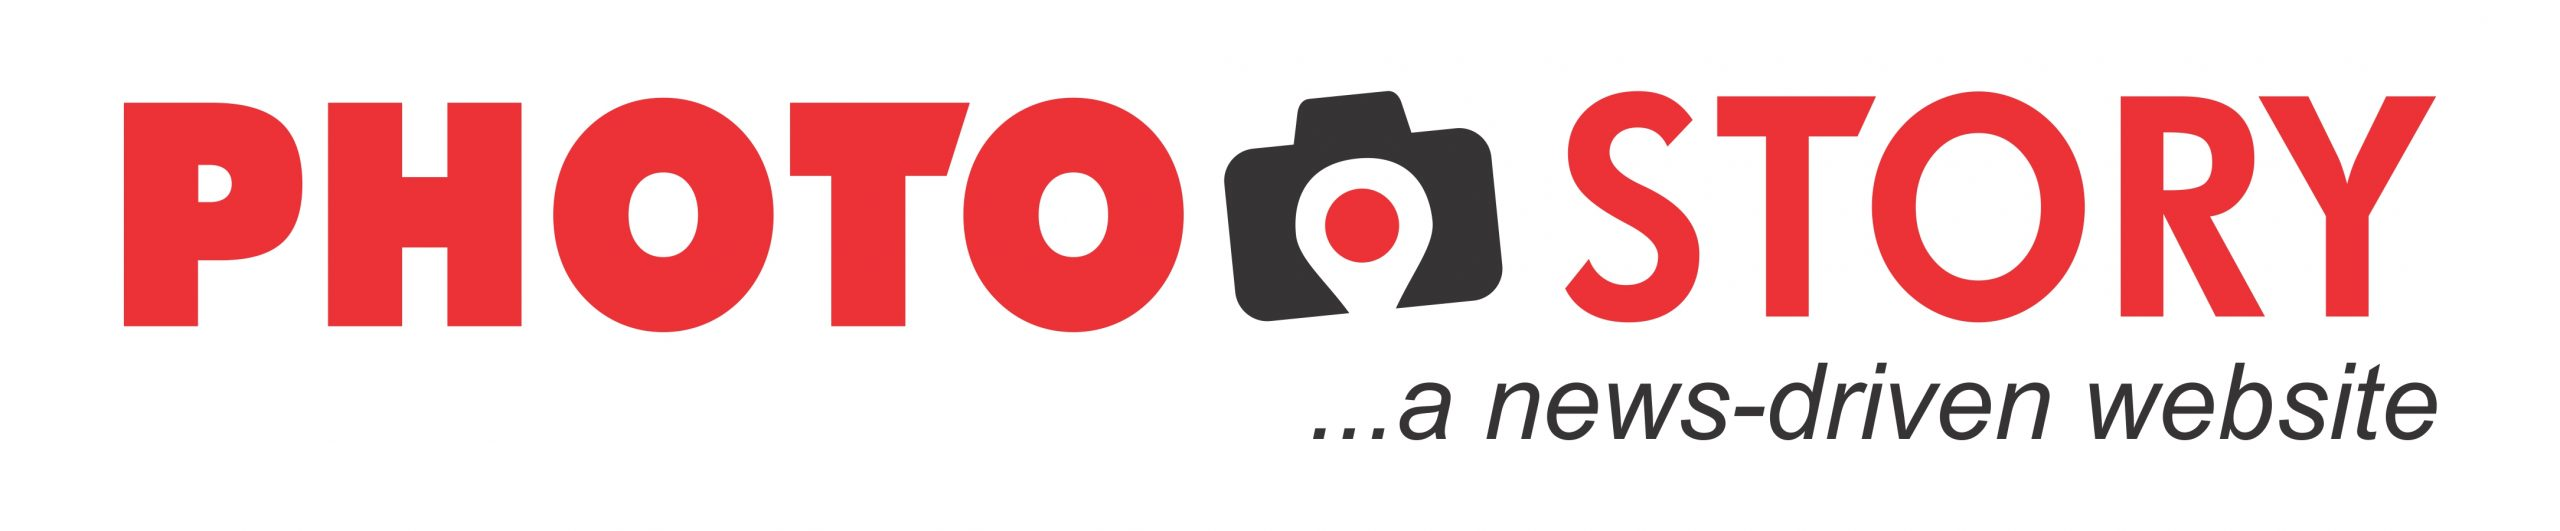 Photostory logo